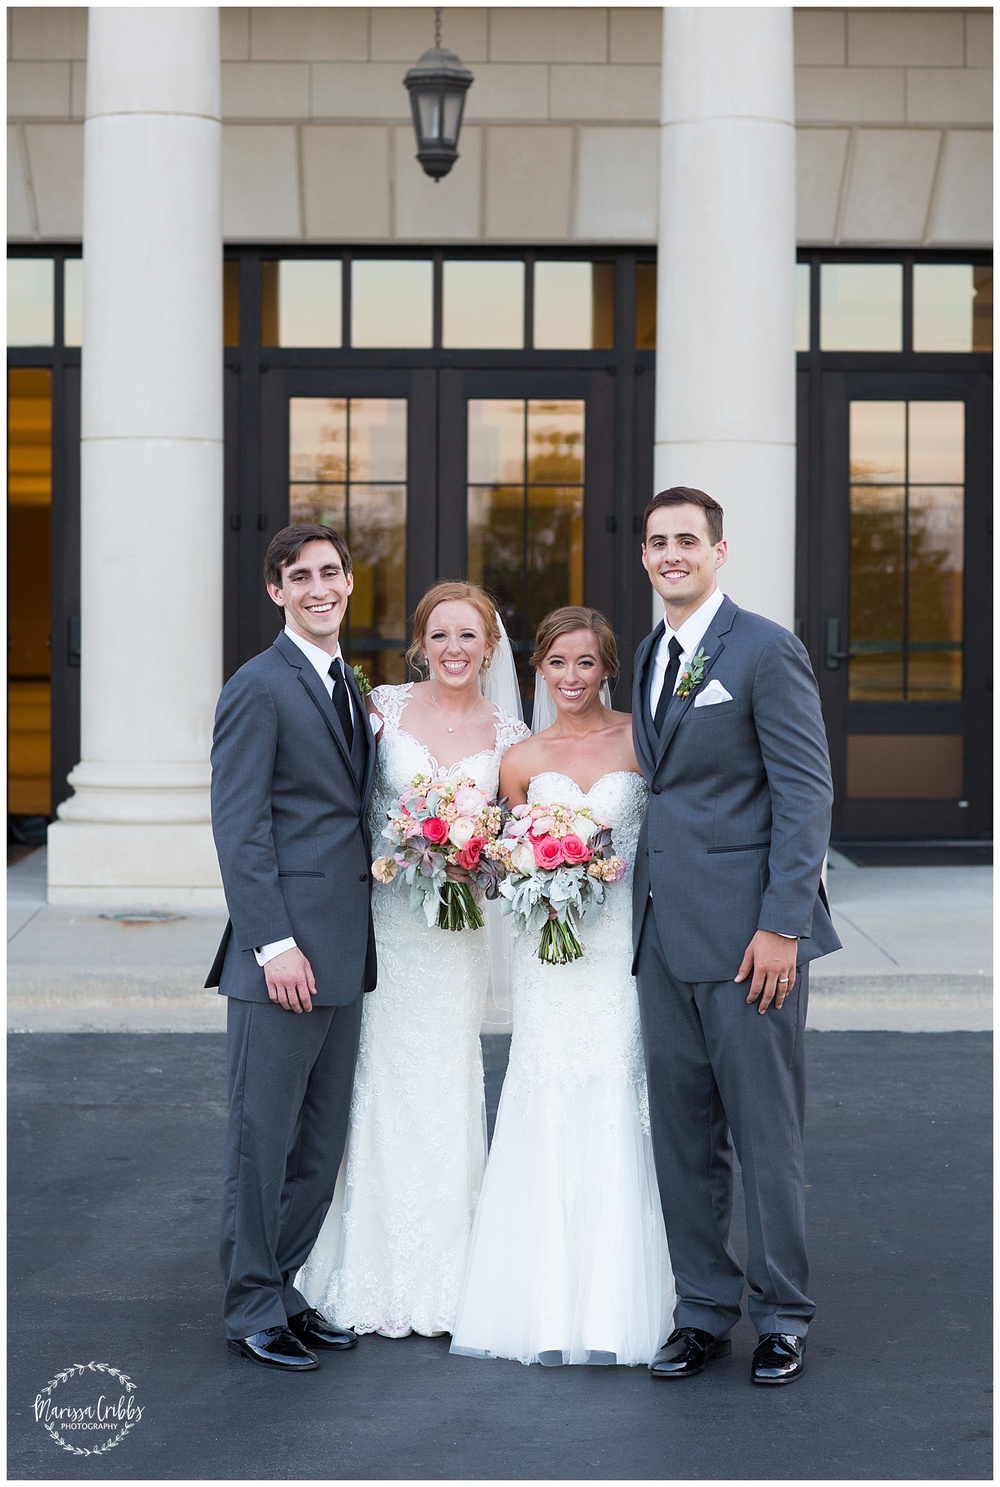 Twin Double Wedding | Union Horse Distilling Co. | Marissa Cribbs Photography | KC Weddings_0165.jpg